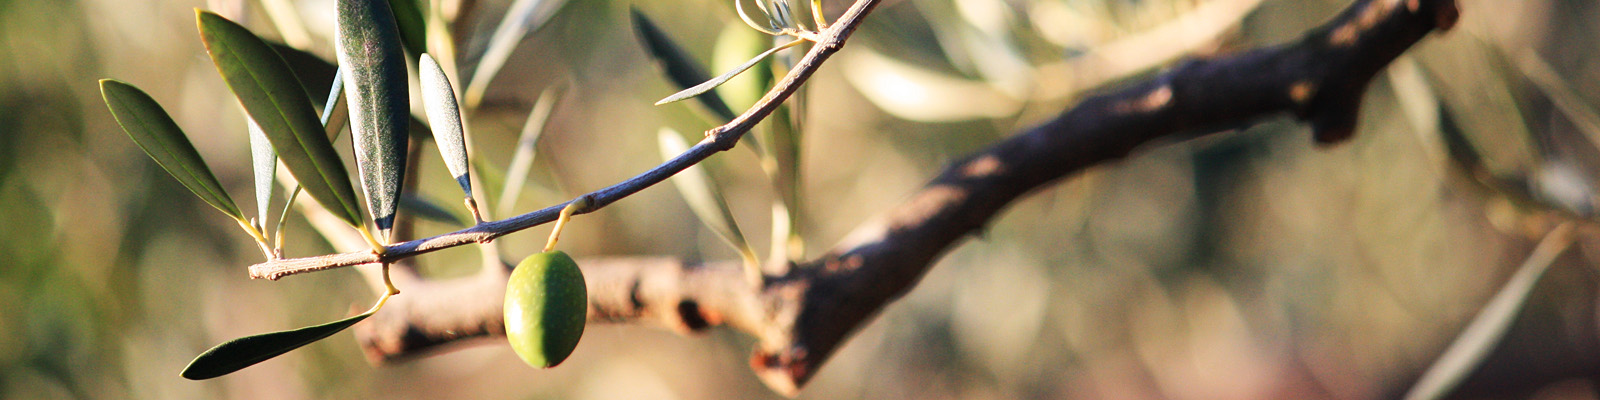 Green Parrot Gardens | Ask the Garden Consultants | Pruned Olive